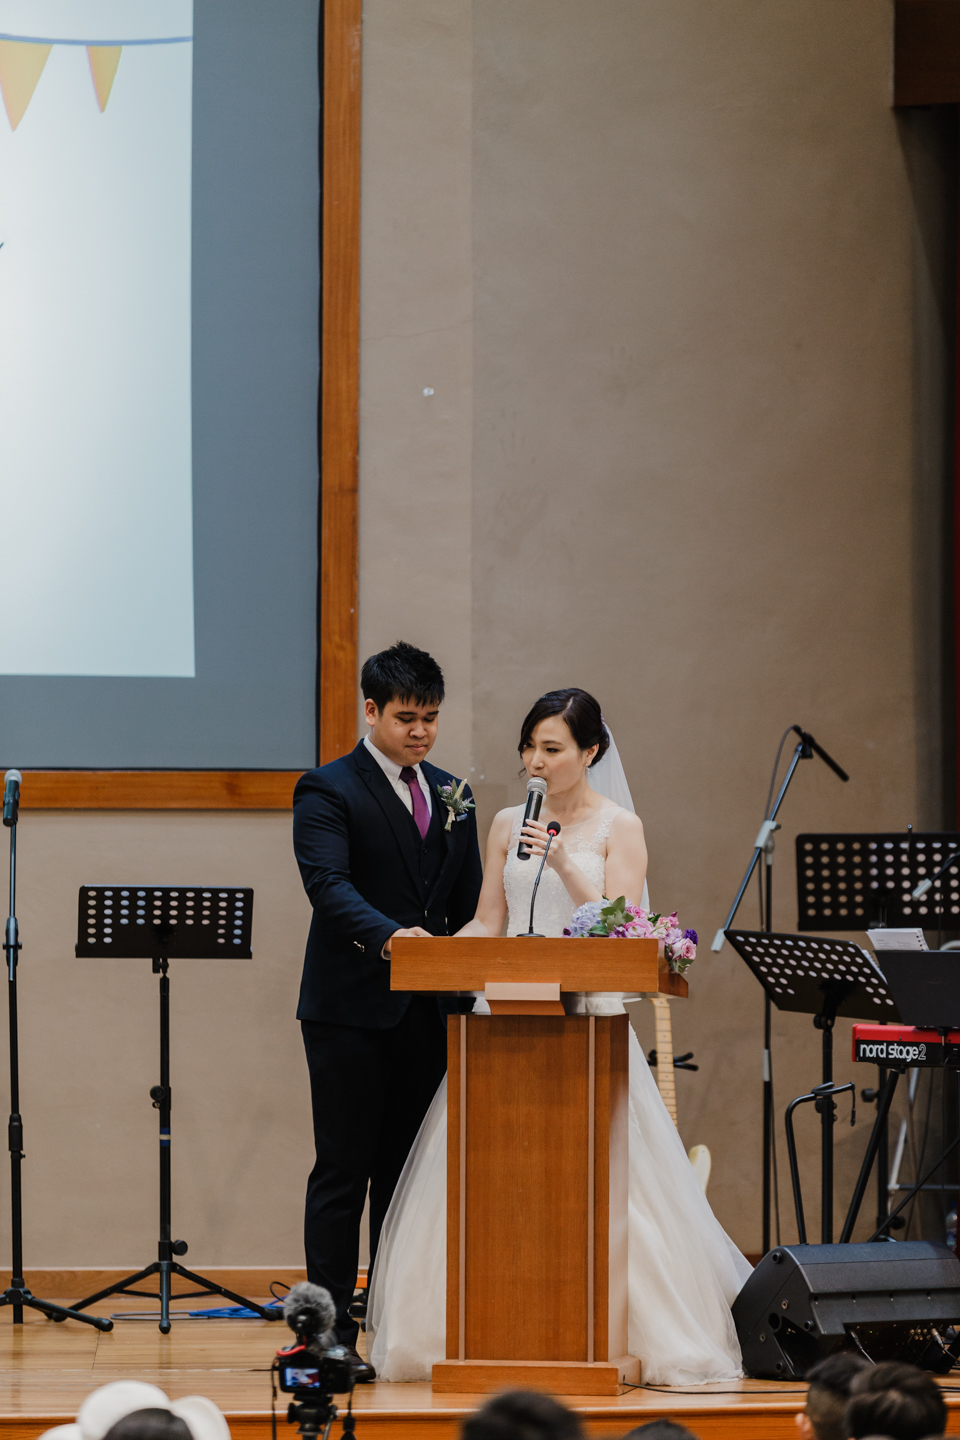 WeddingDay_Elliot&Hui-9598.jpg